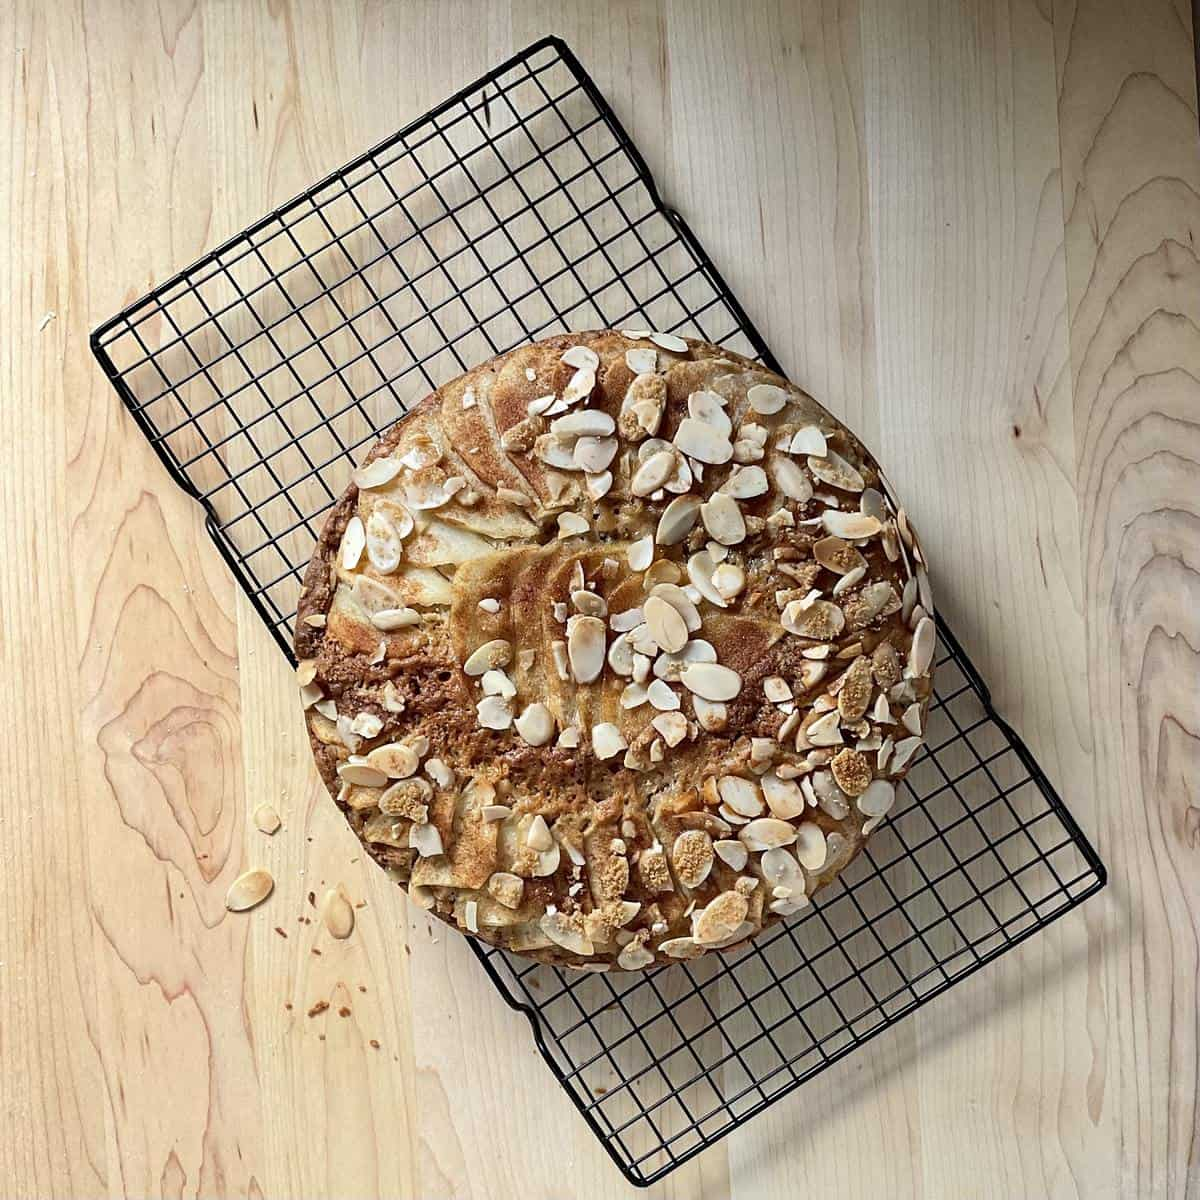 Pear cake on a cooling rack.